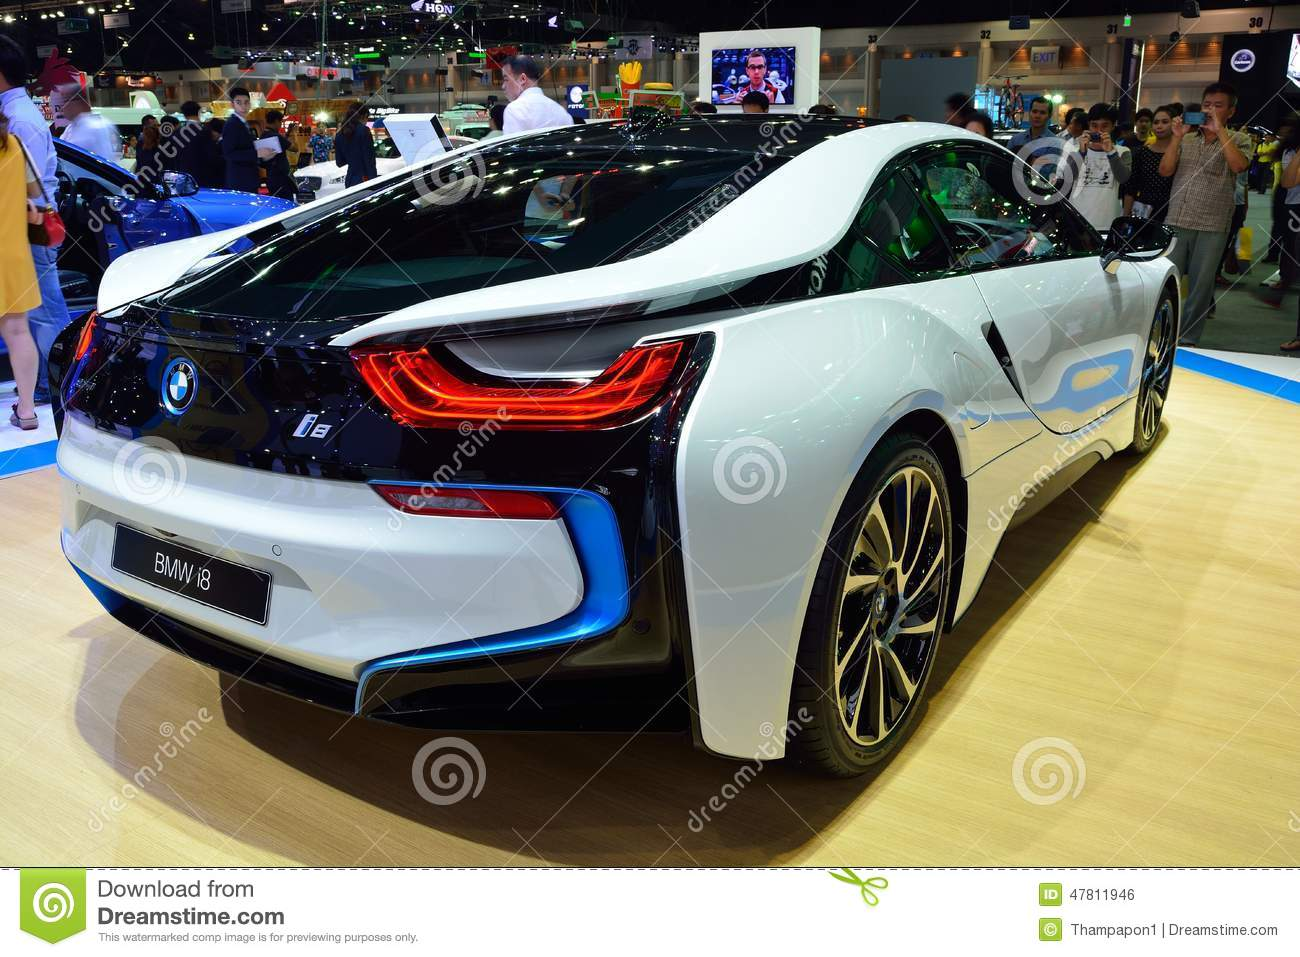 ... New BMW I8 Sports Car Display At Thaila Editorial Photo. Download Comp